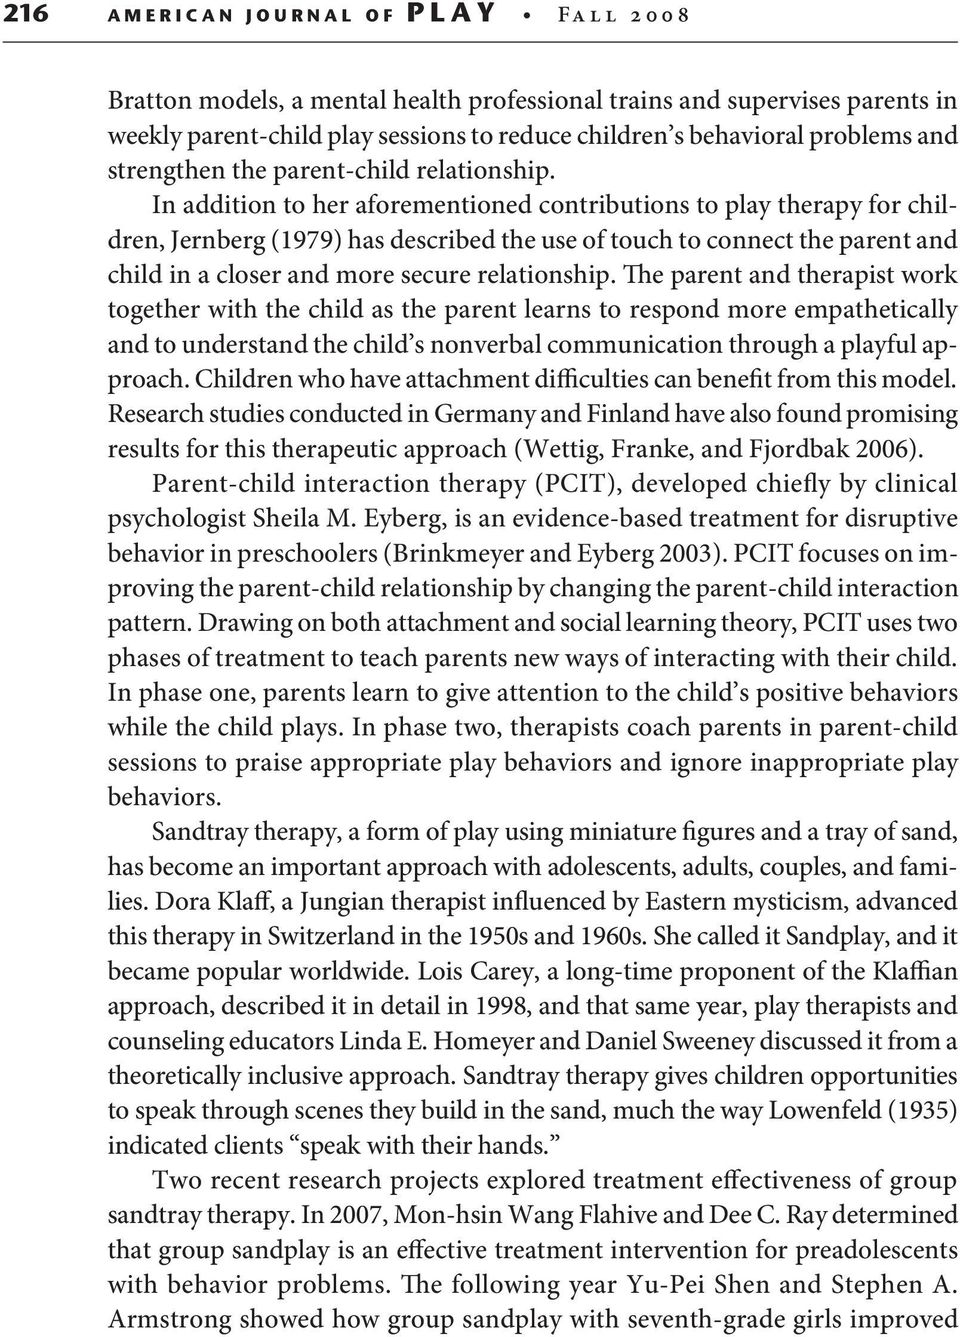 In addition to her aforementioned contributions to play therapy for children, Jernberg (1979) has described the use of touch to connect the parent and child in a closer and more secure relationship.